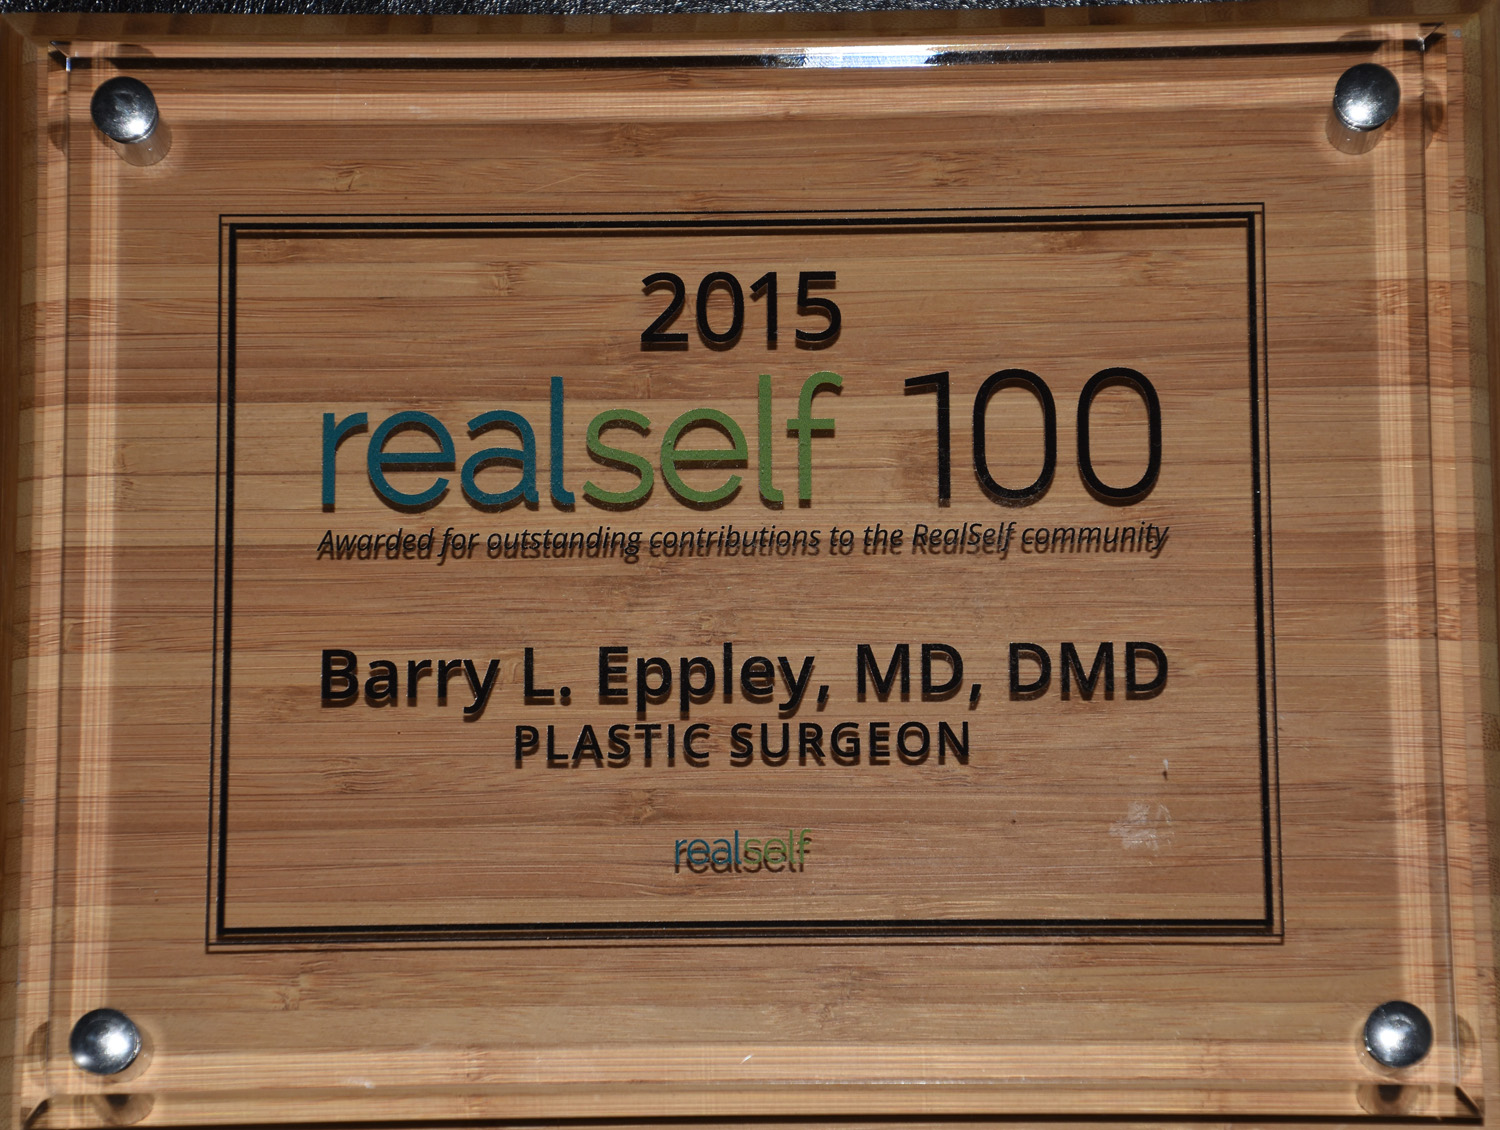 explore plastic surgery dr barry eppleyreal self 100 archives real self 100 2015 dr barry eppley napolis